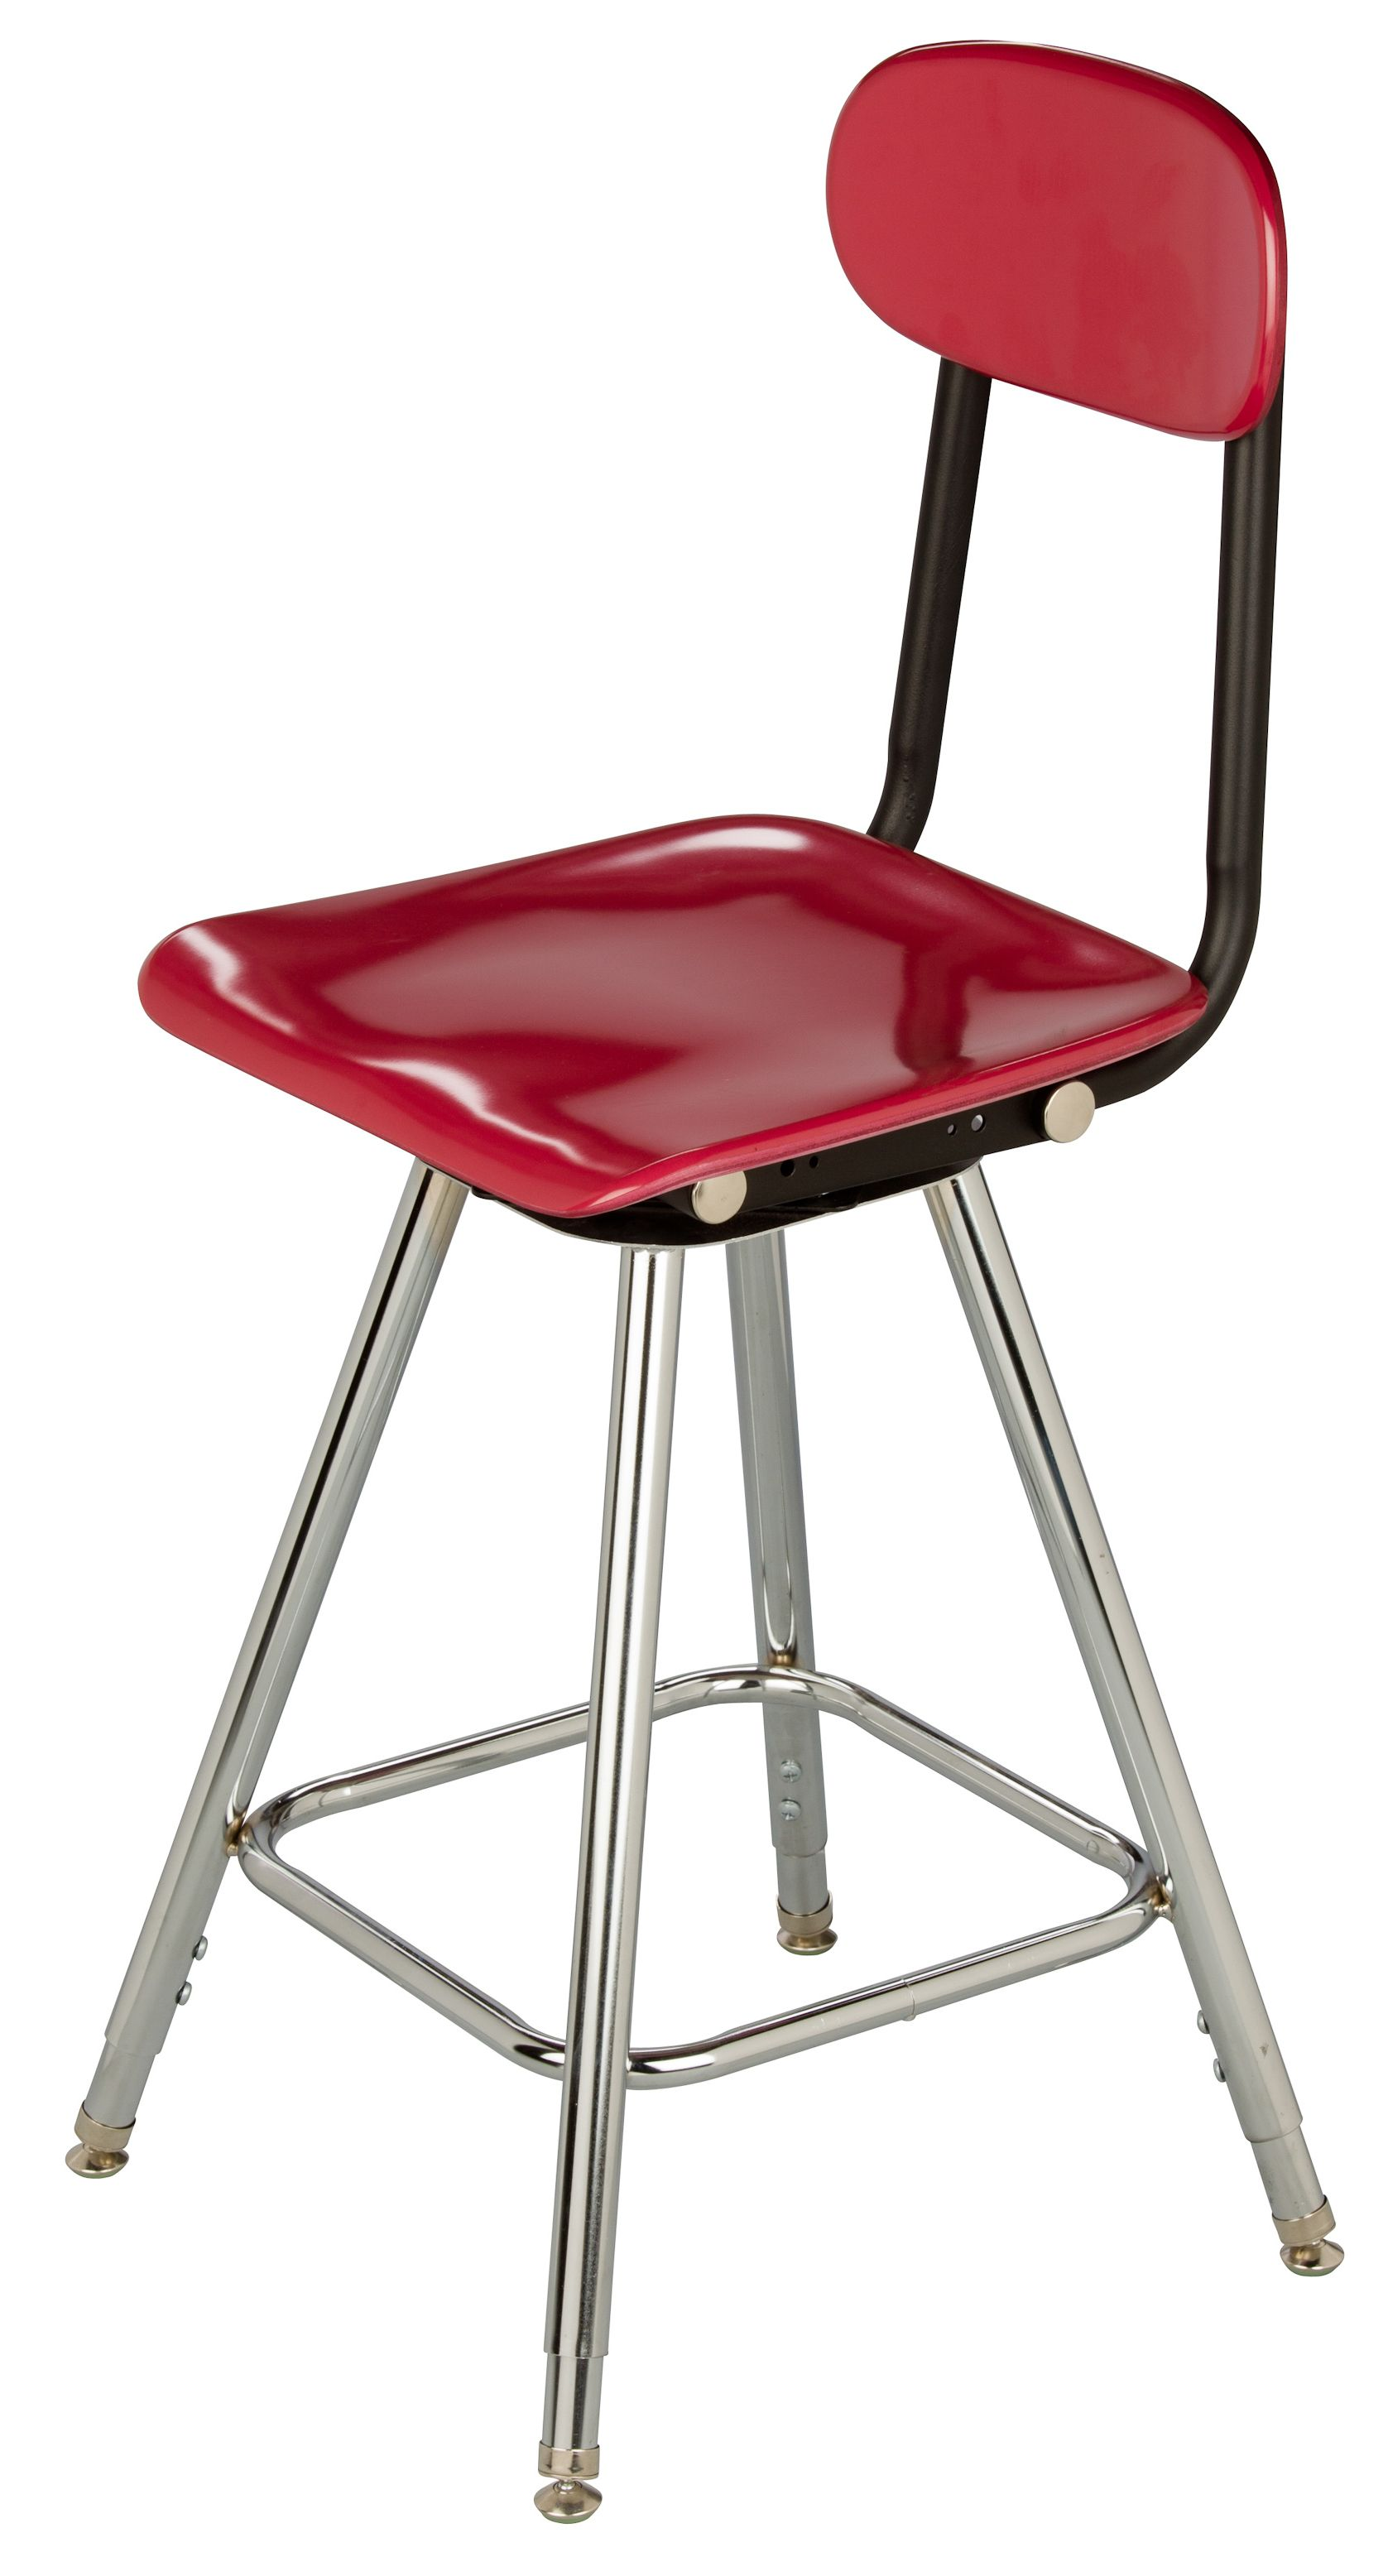 Adjustable Swivel Stool Legacy Seat In 2020 Classroom Chairs Swivel Stool Chair